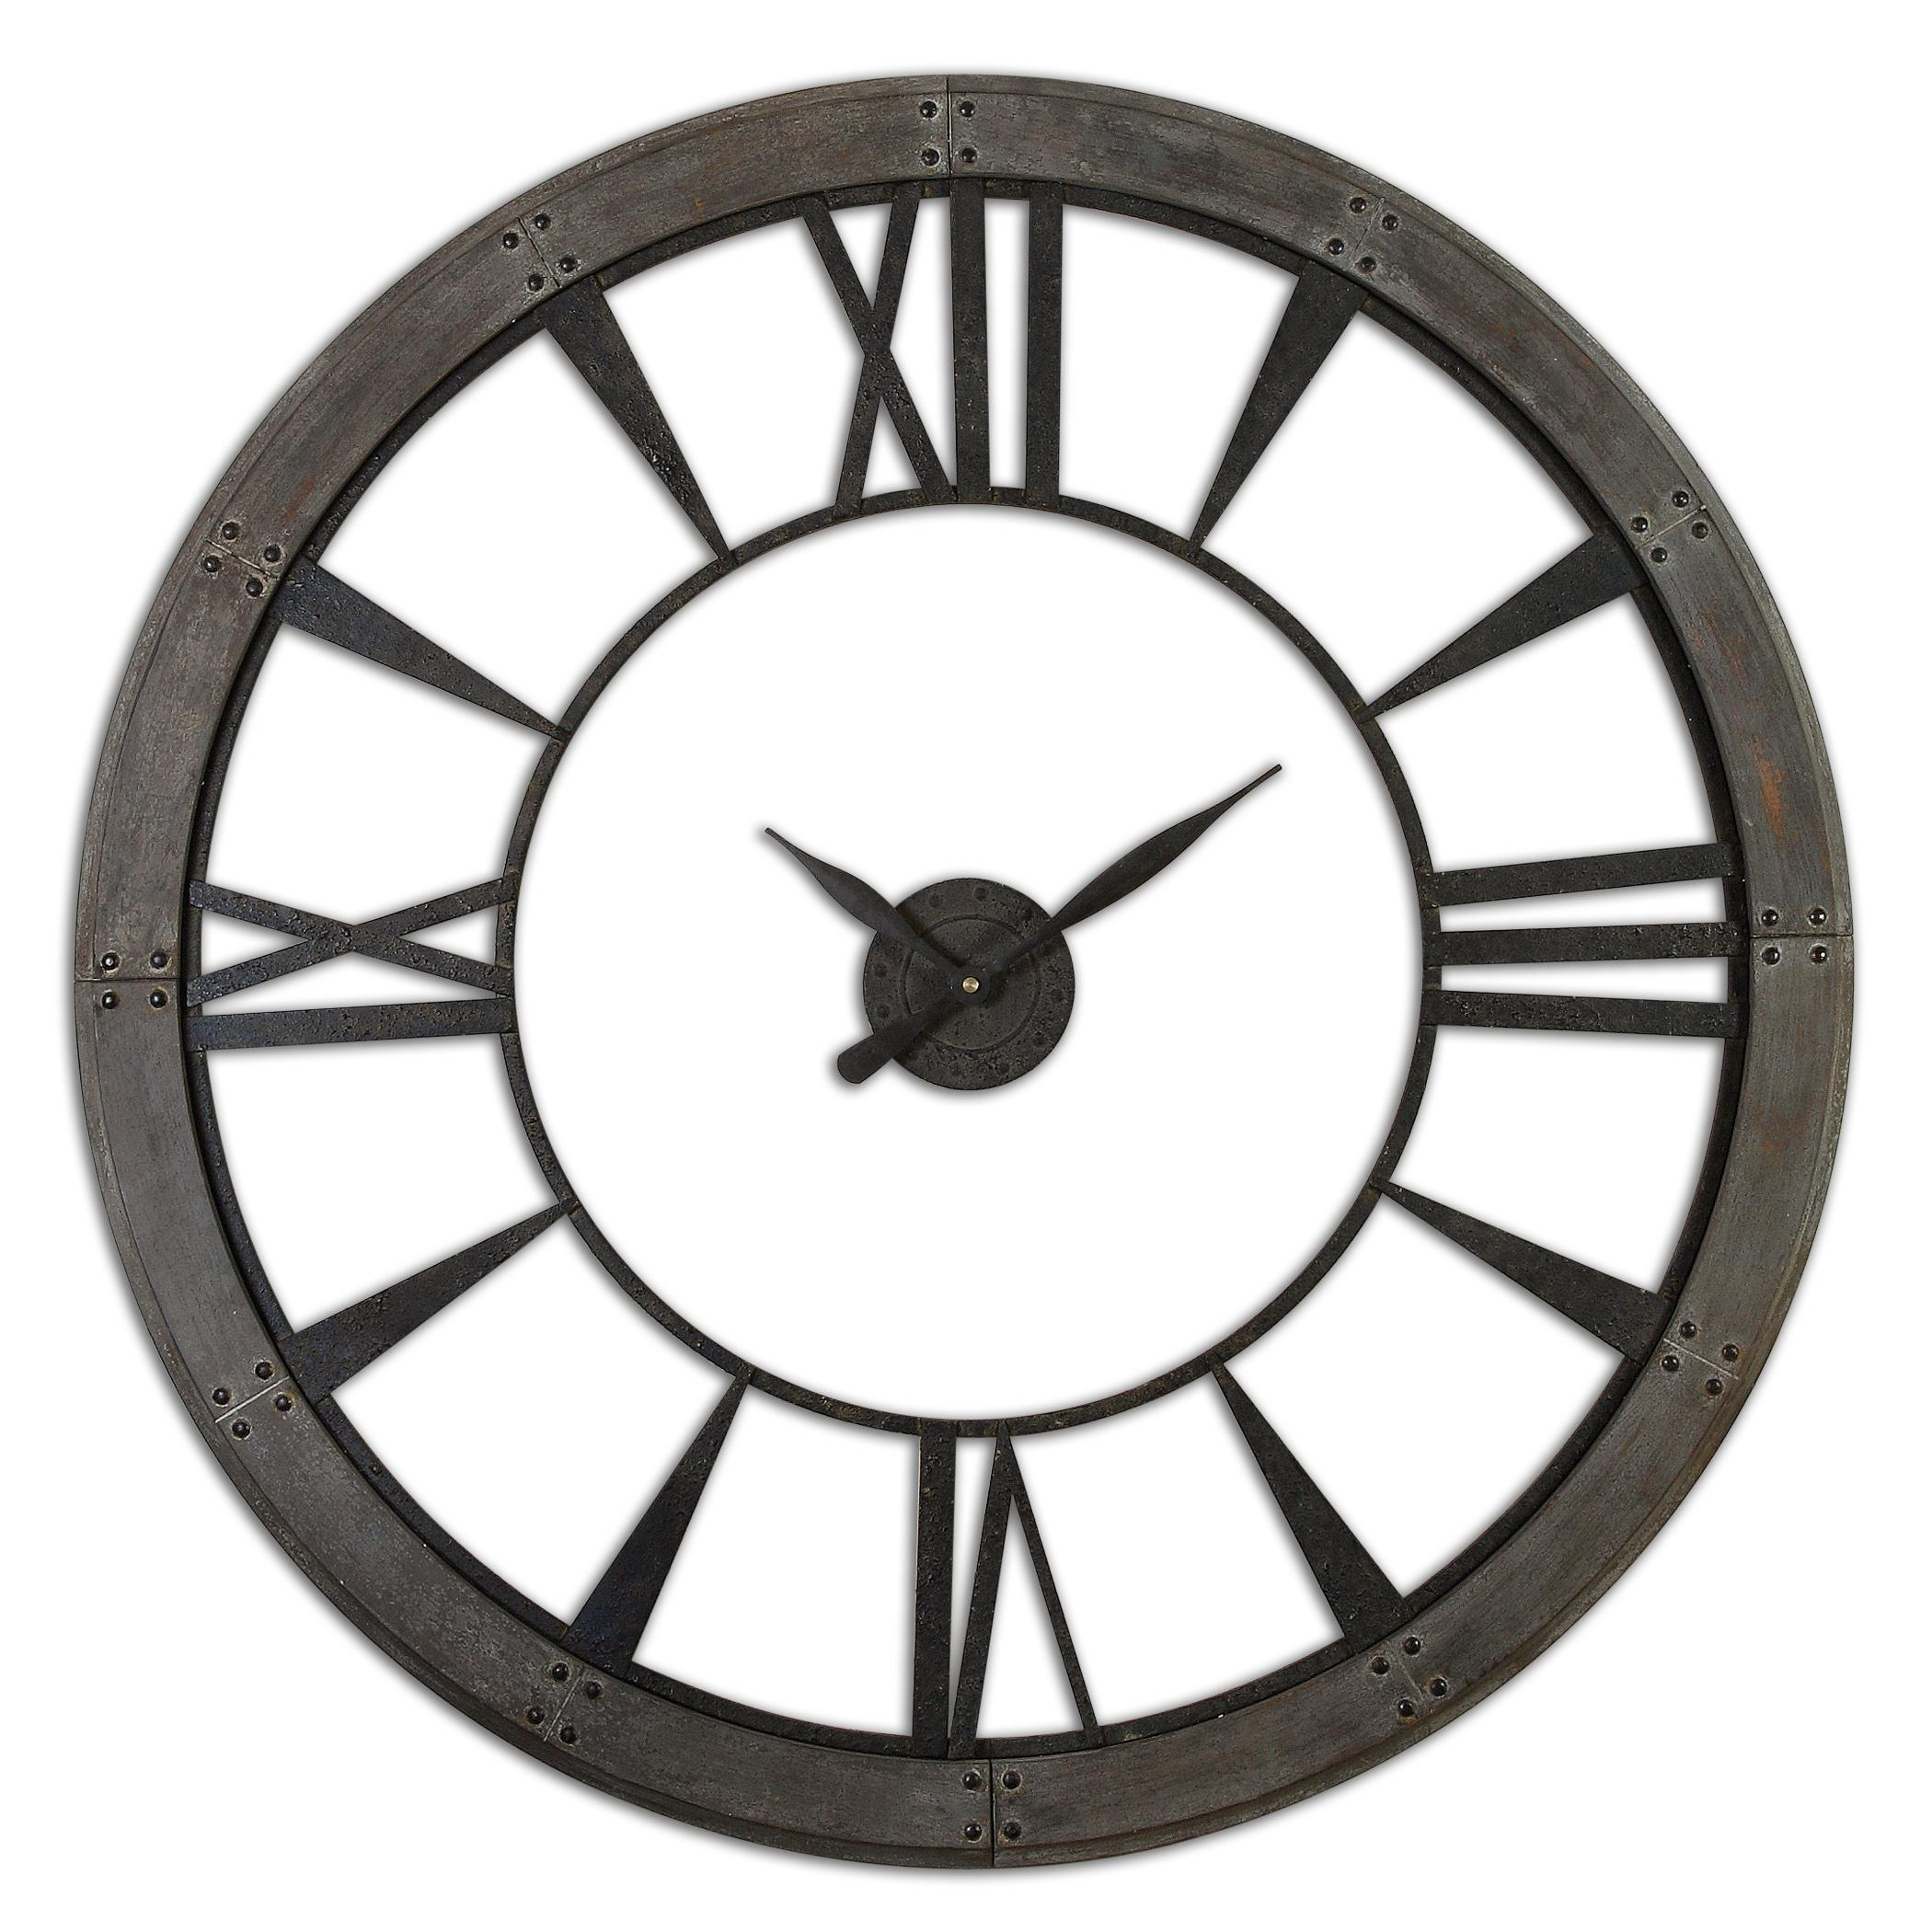 Uttermost Clocks Ronan Wall Clock, Large - Item Number: 06084